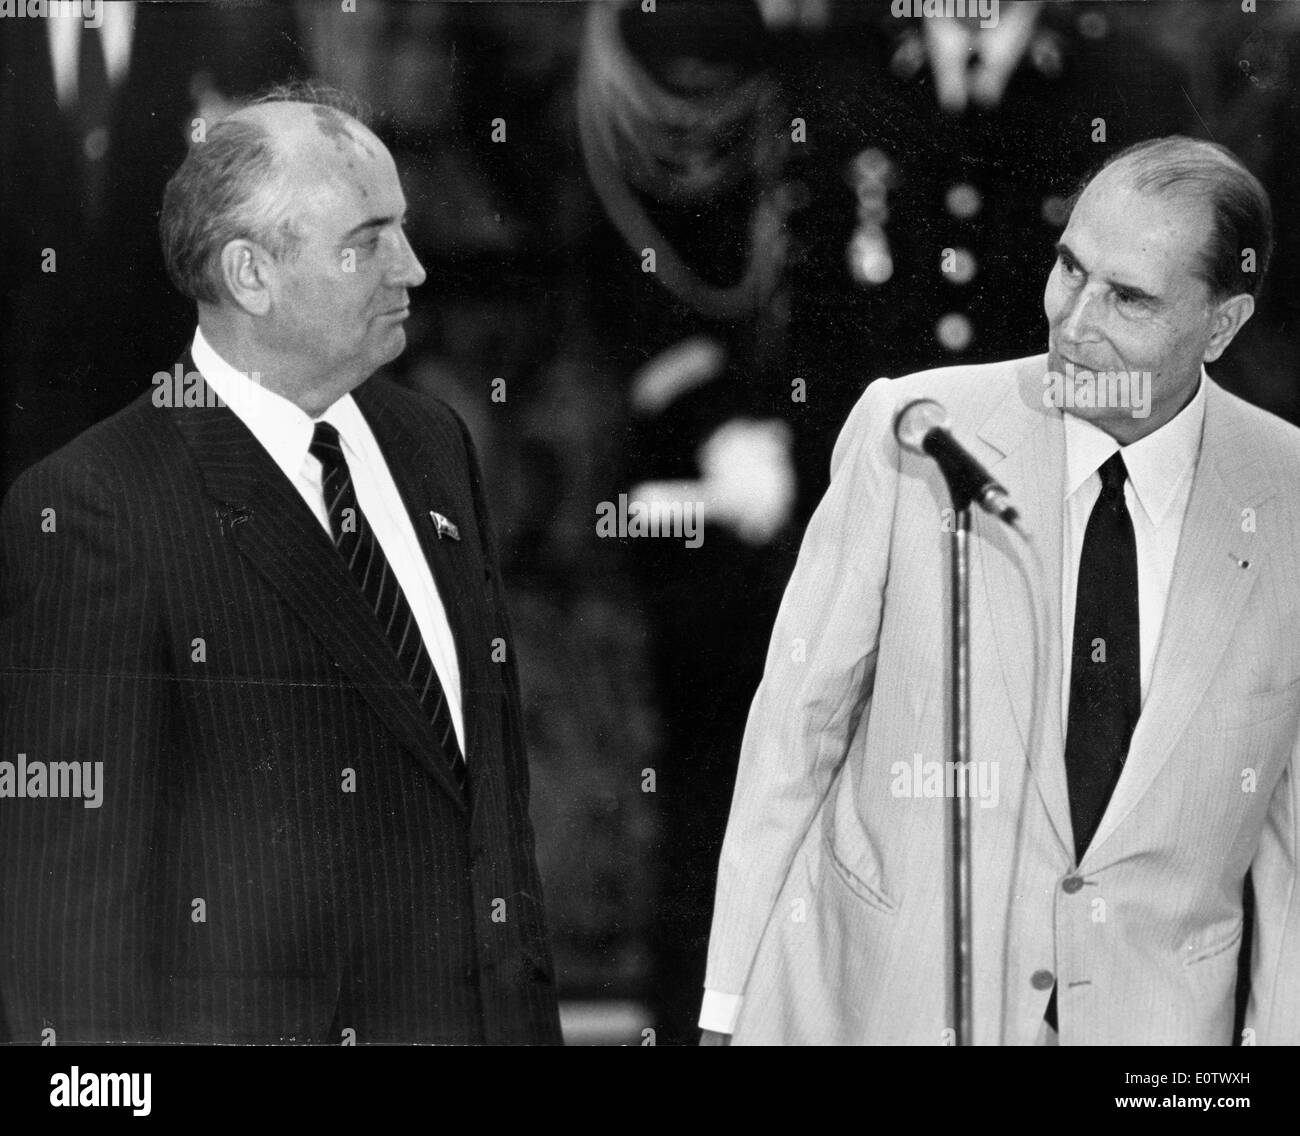 Mikhail Gorbachev talks with colleague at press conference Stock Photo